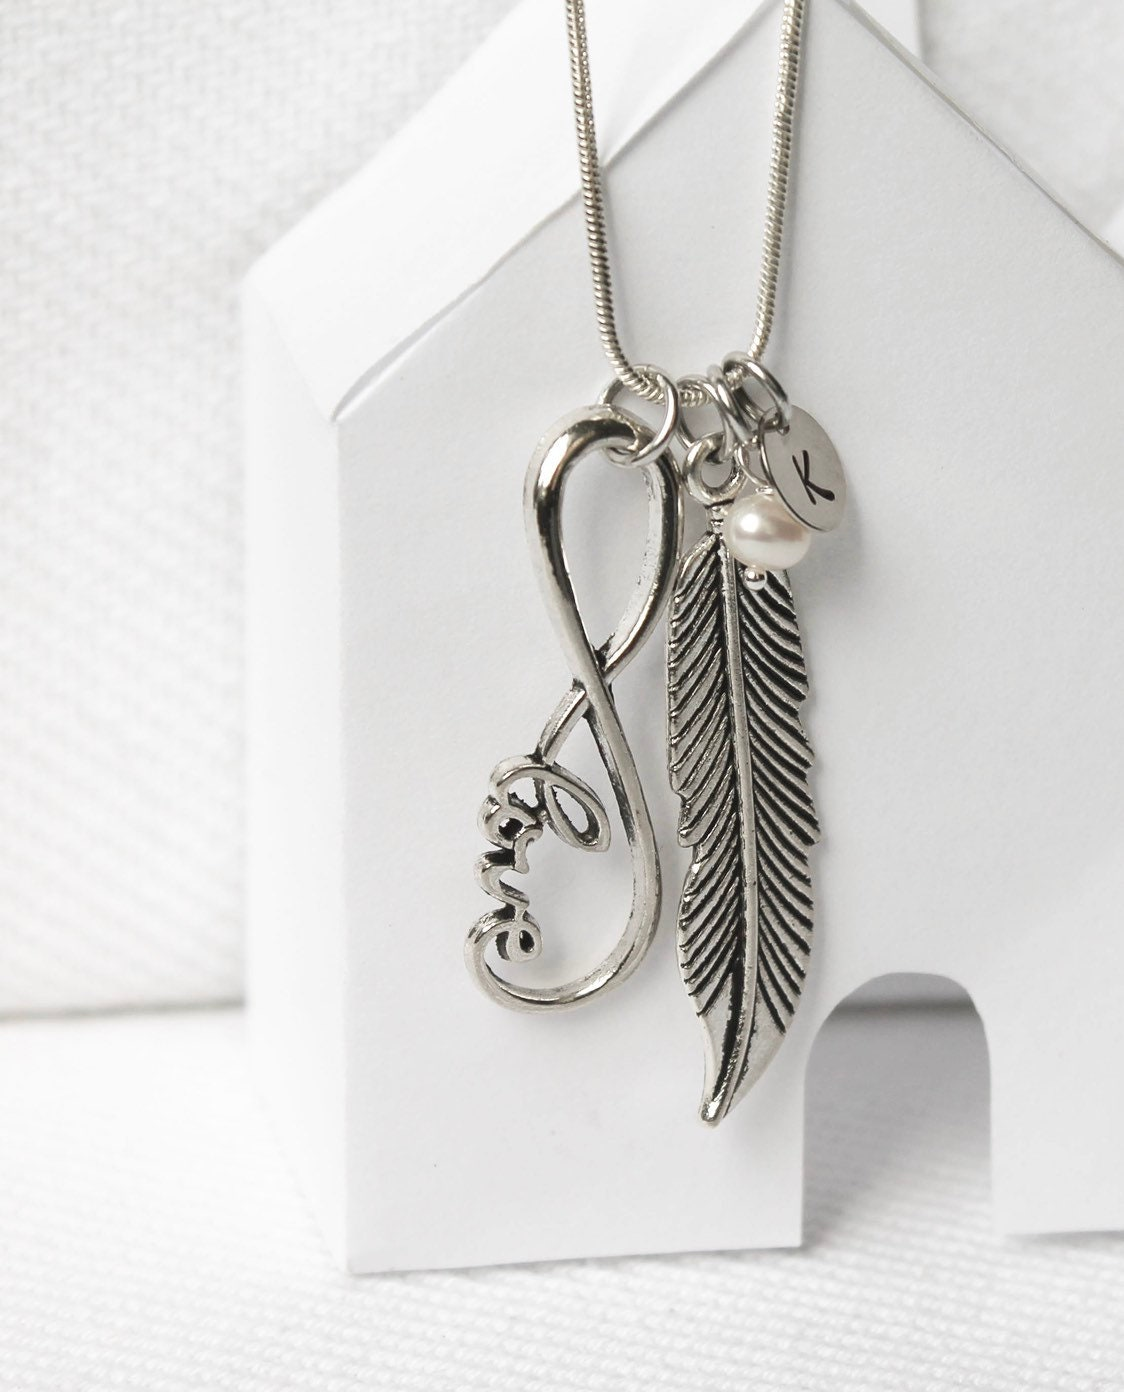 Feather Pendant Necklace Custom Jewelry With Large Feather